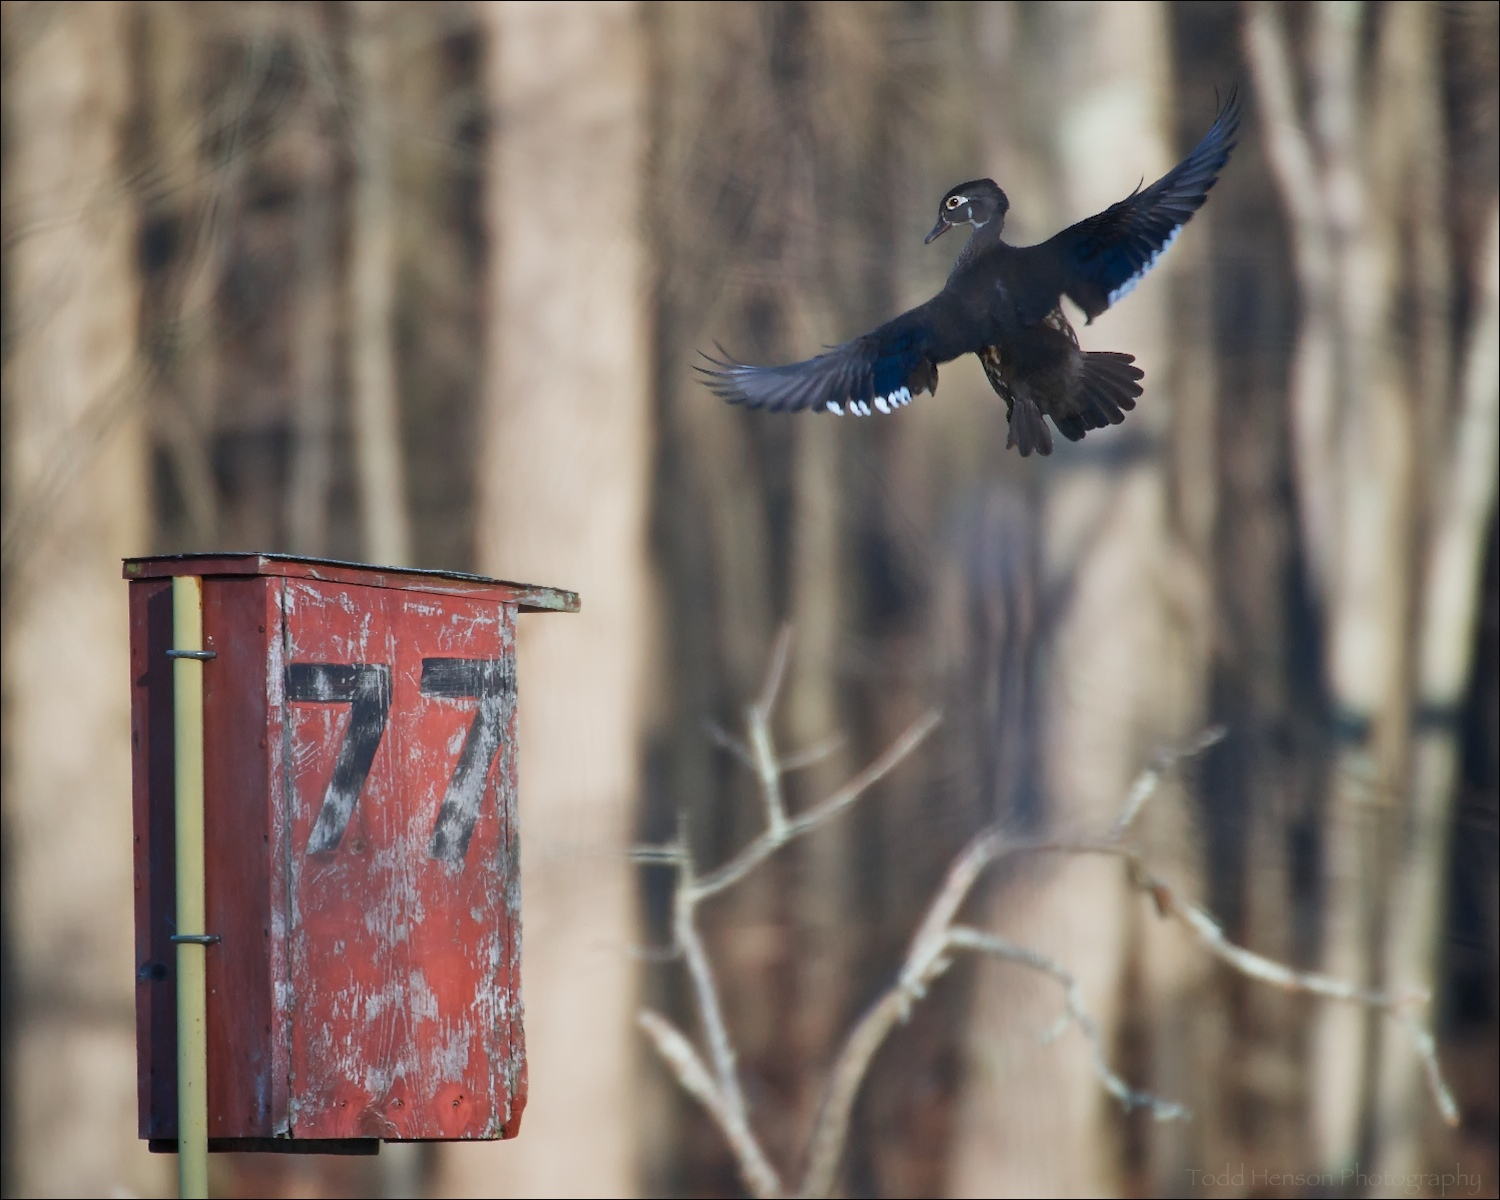 Female Wood Duck flying towards duck house during nesting season. It was amazing watching her fly right into the hole in the box.